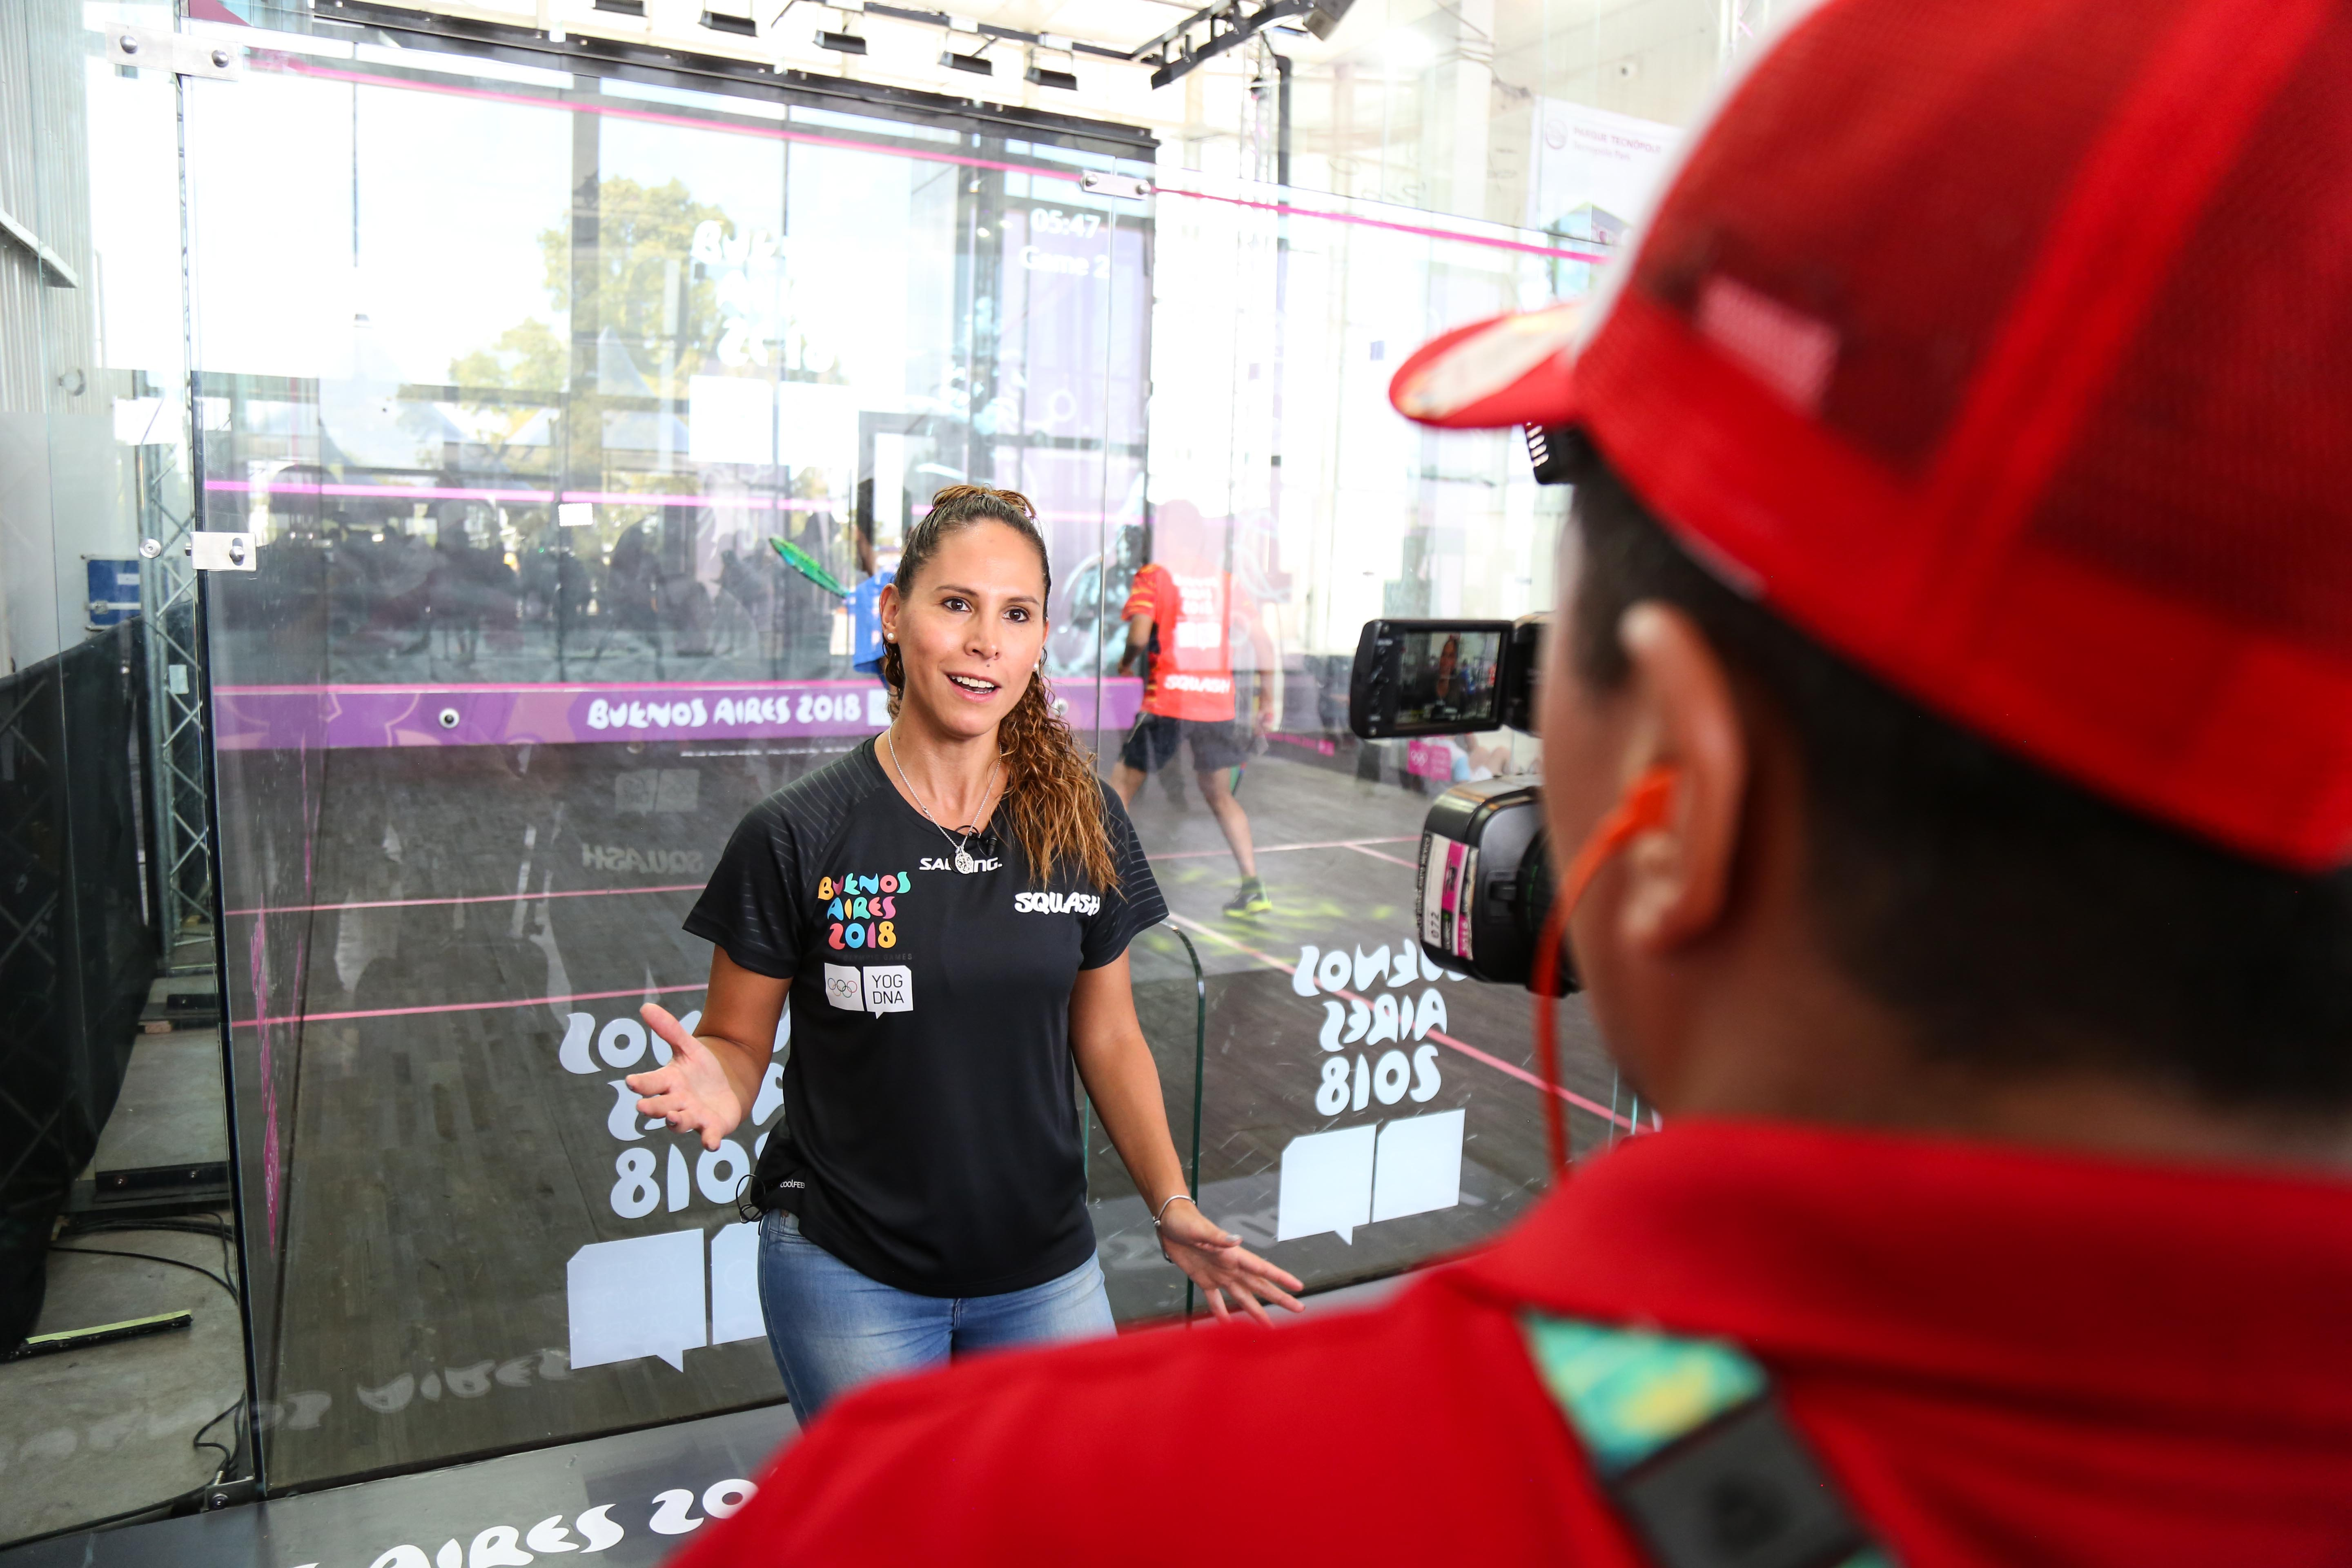 Samantha Teran speaks to the media during the 2018 Buenos Aires Youth Olympic Games